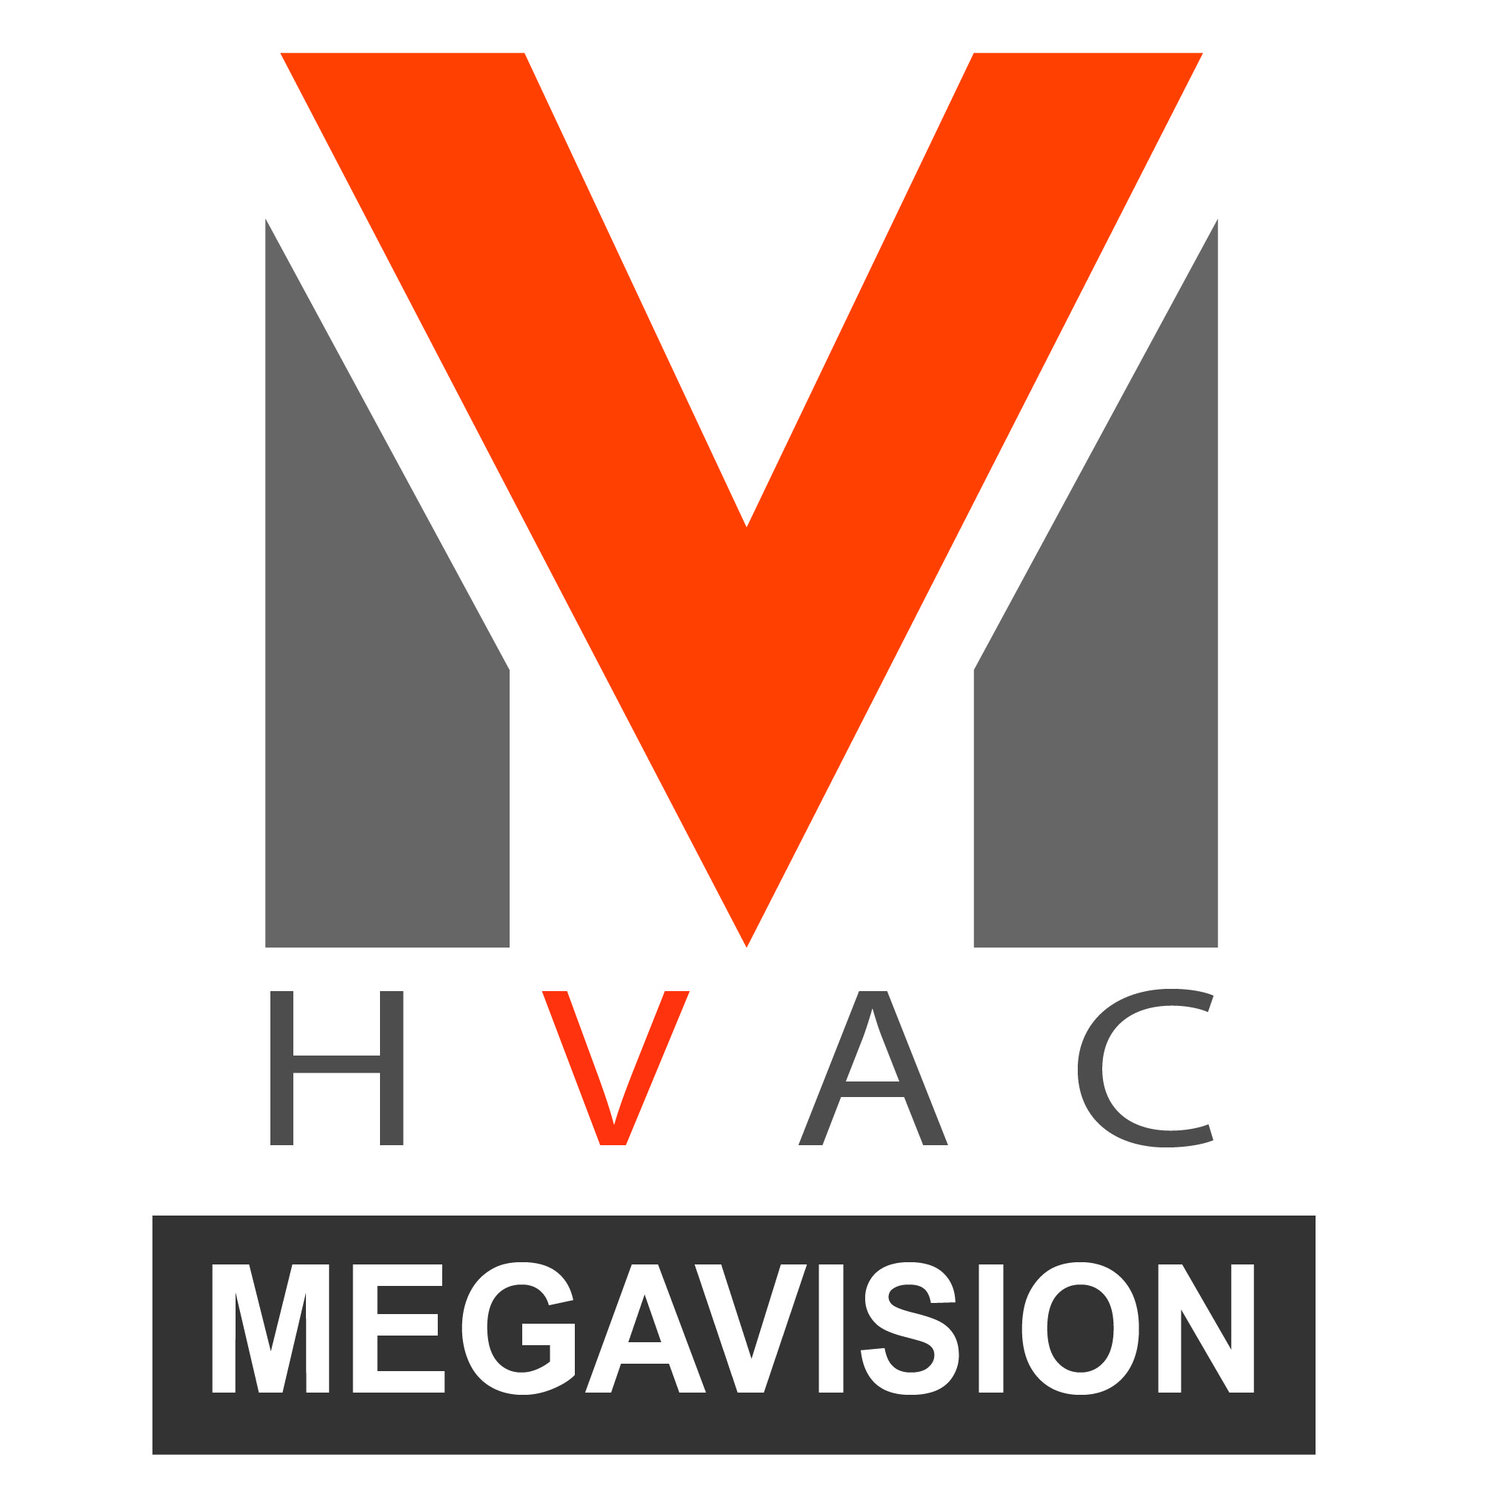 MegaVision HVAC - Architectural Grilles, Water Coil, Radiator Covers, Custom Metal Fabrications